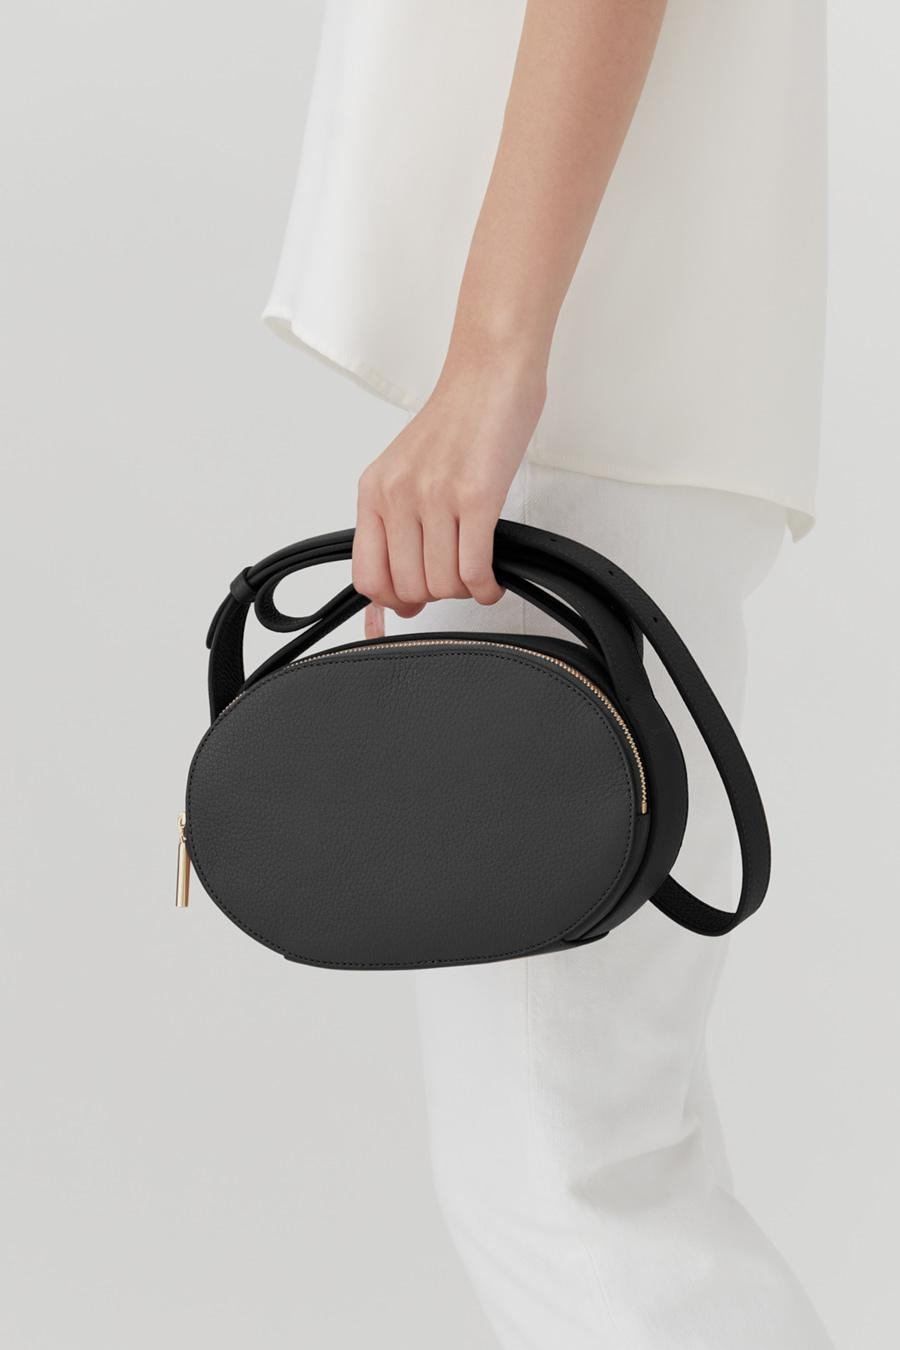 Women's Top Handle Crossbody Bag in Black   Pebbled Leather by Cuyana 5